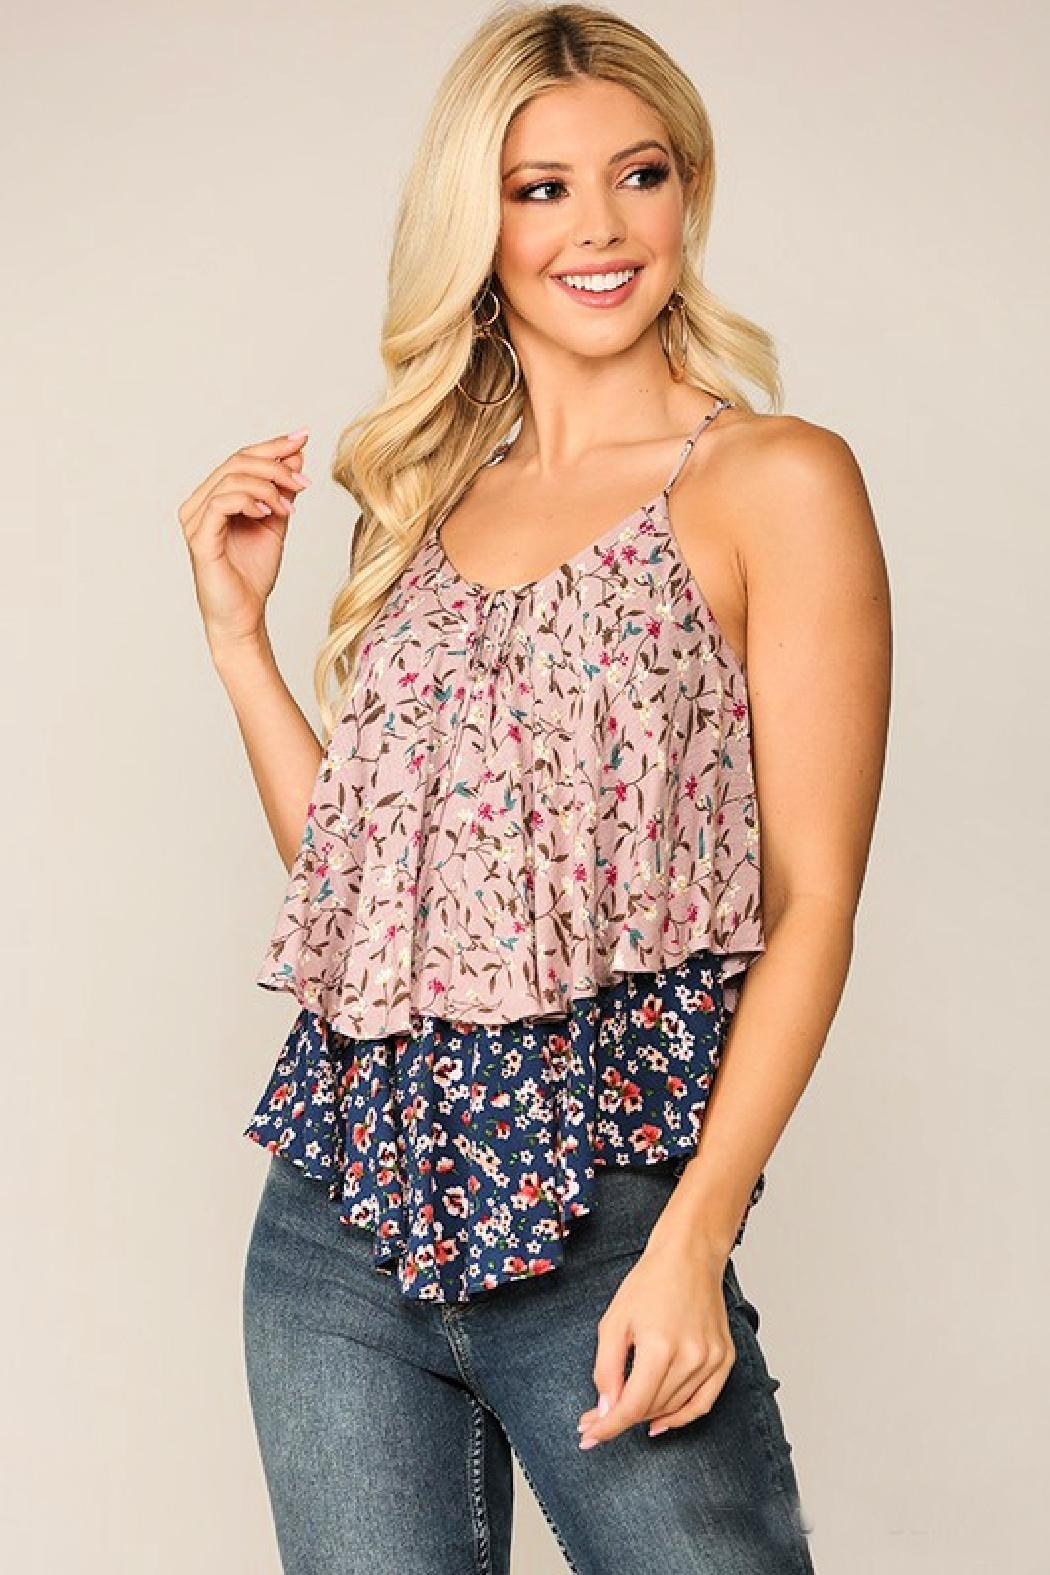 GiGiO Double-Layer Floral Cami - Main Image